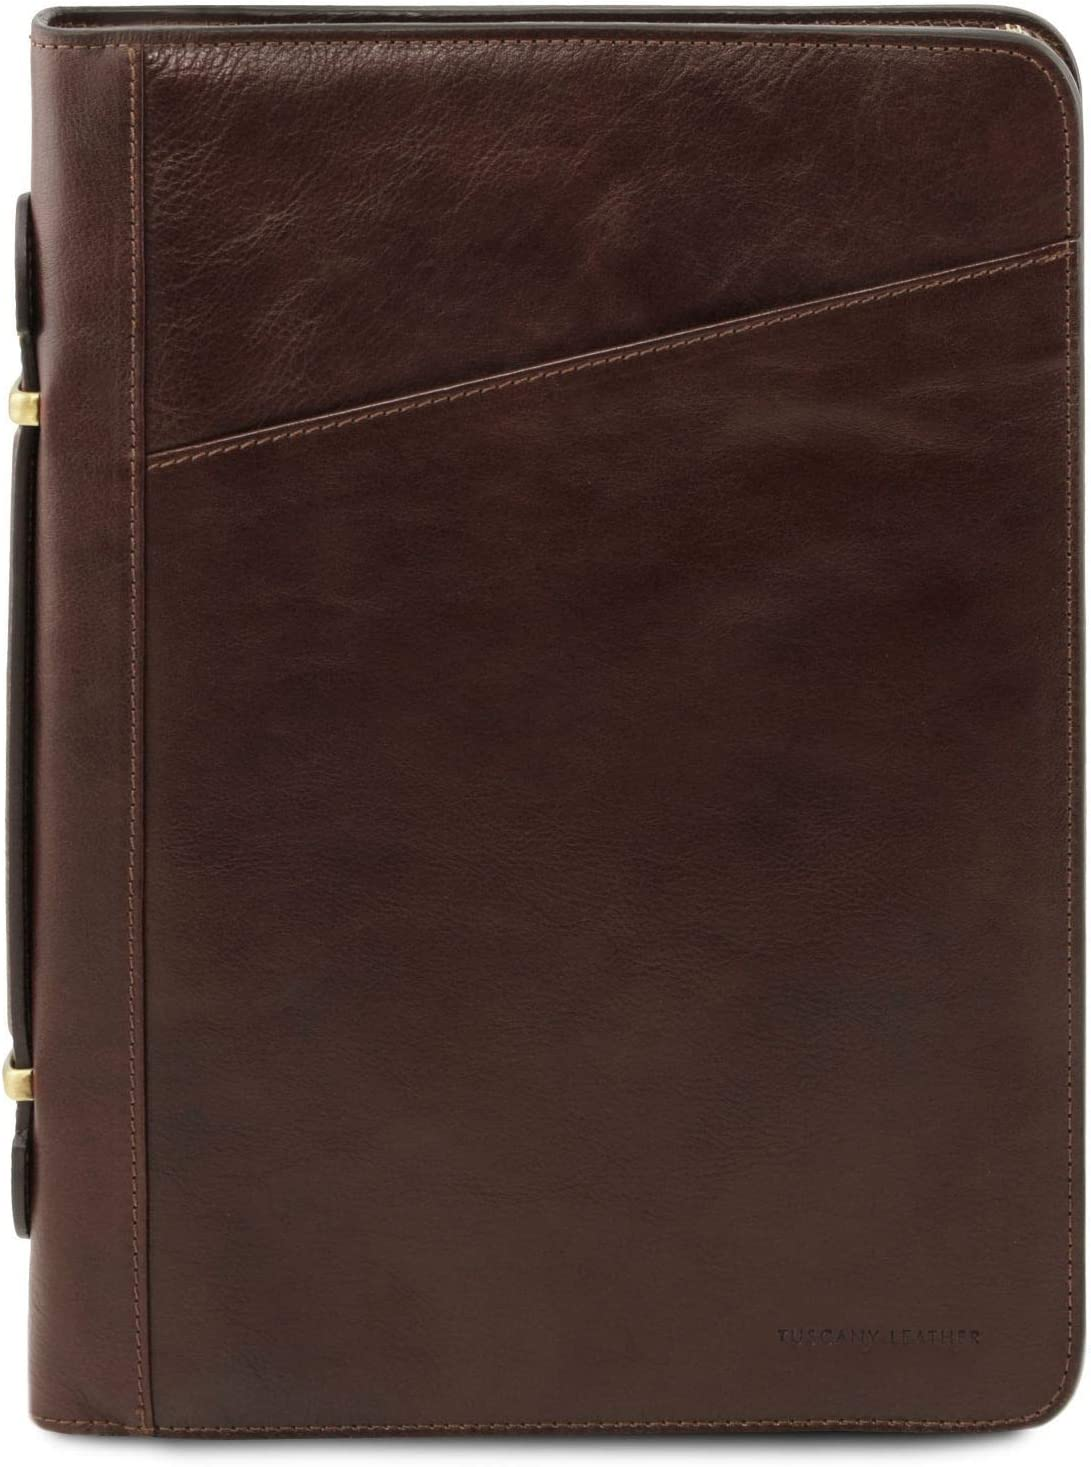 Tuscany Leather Claudio Exclusive leather OFFicial shop document with case El Paso Mall han